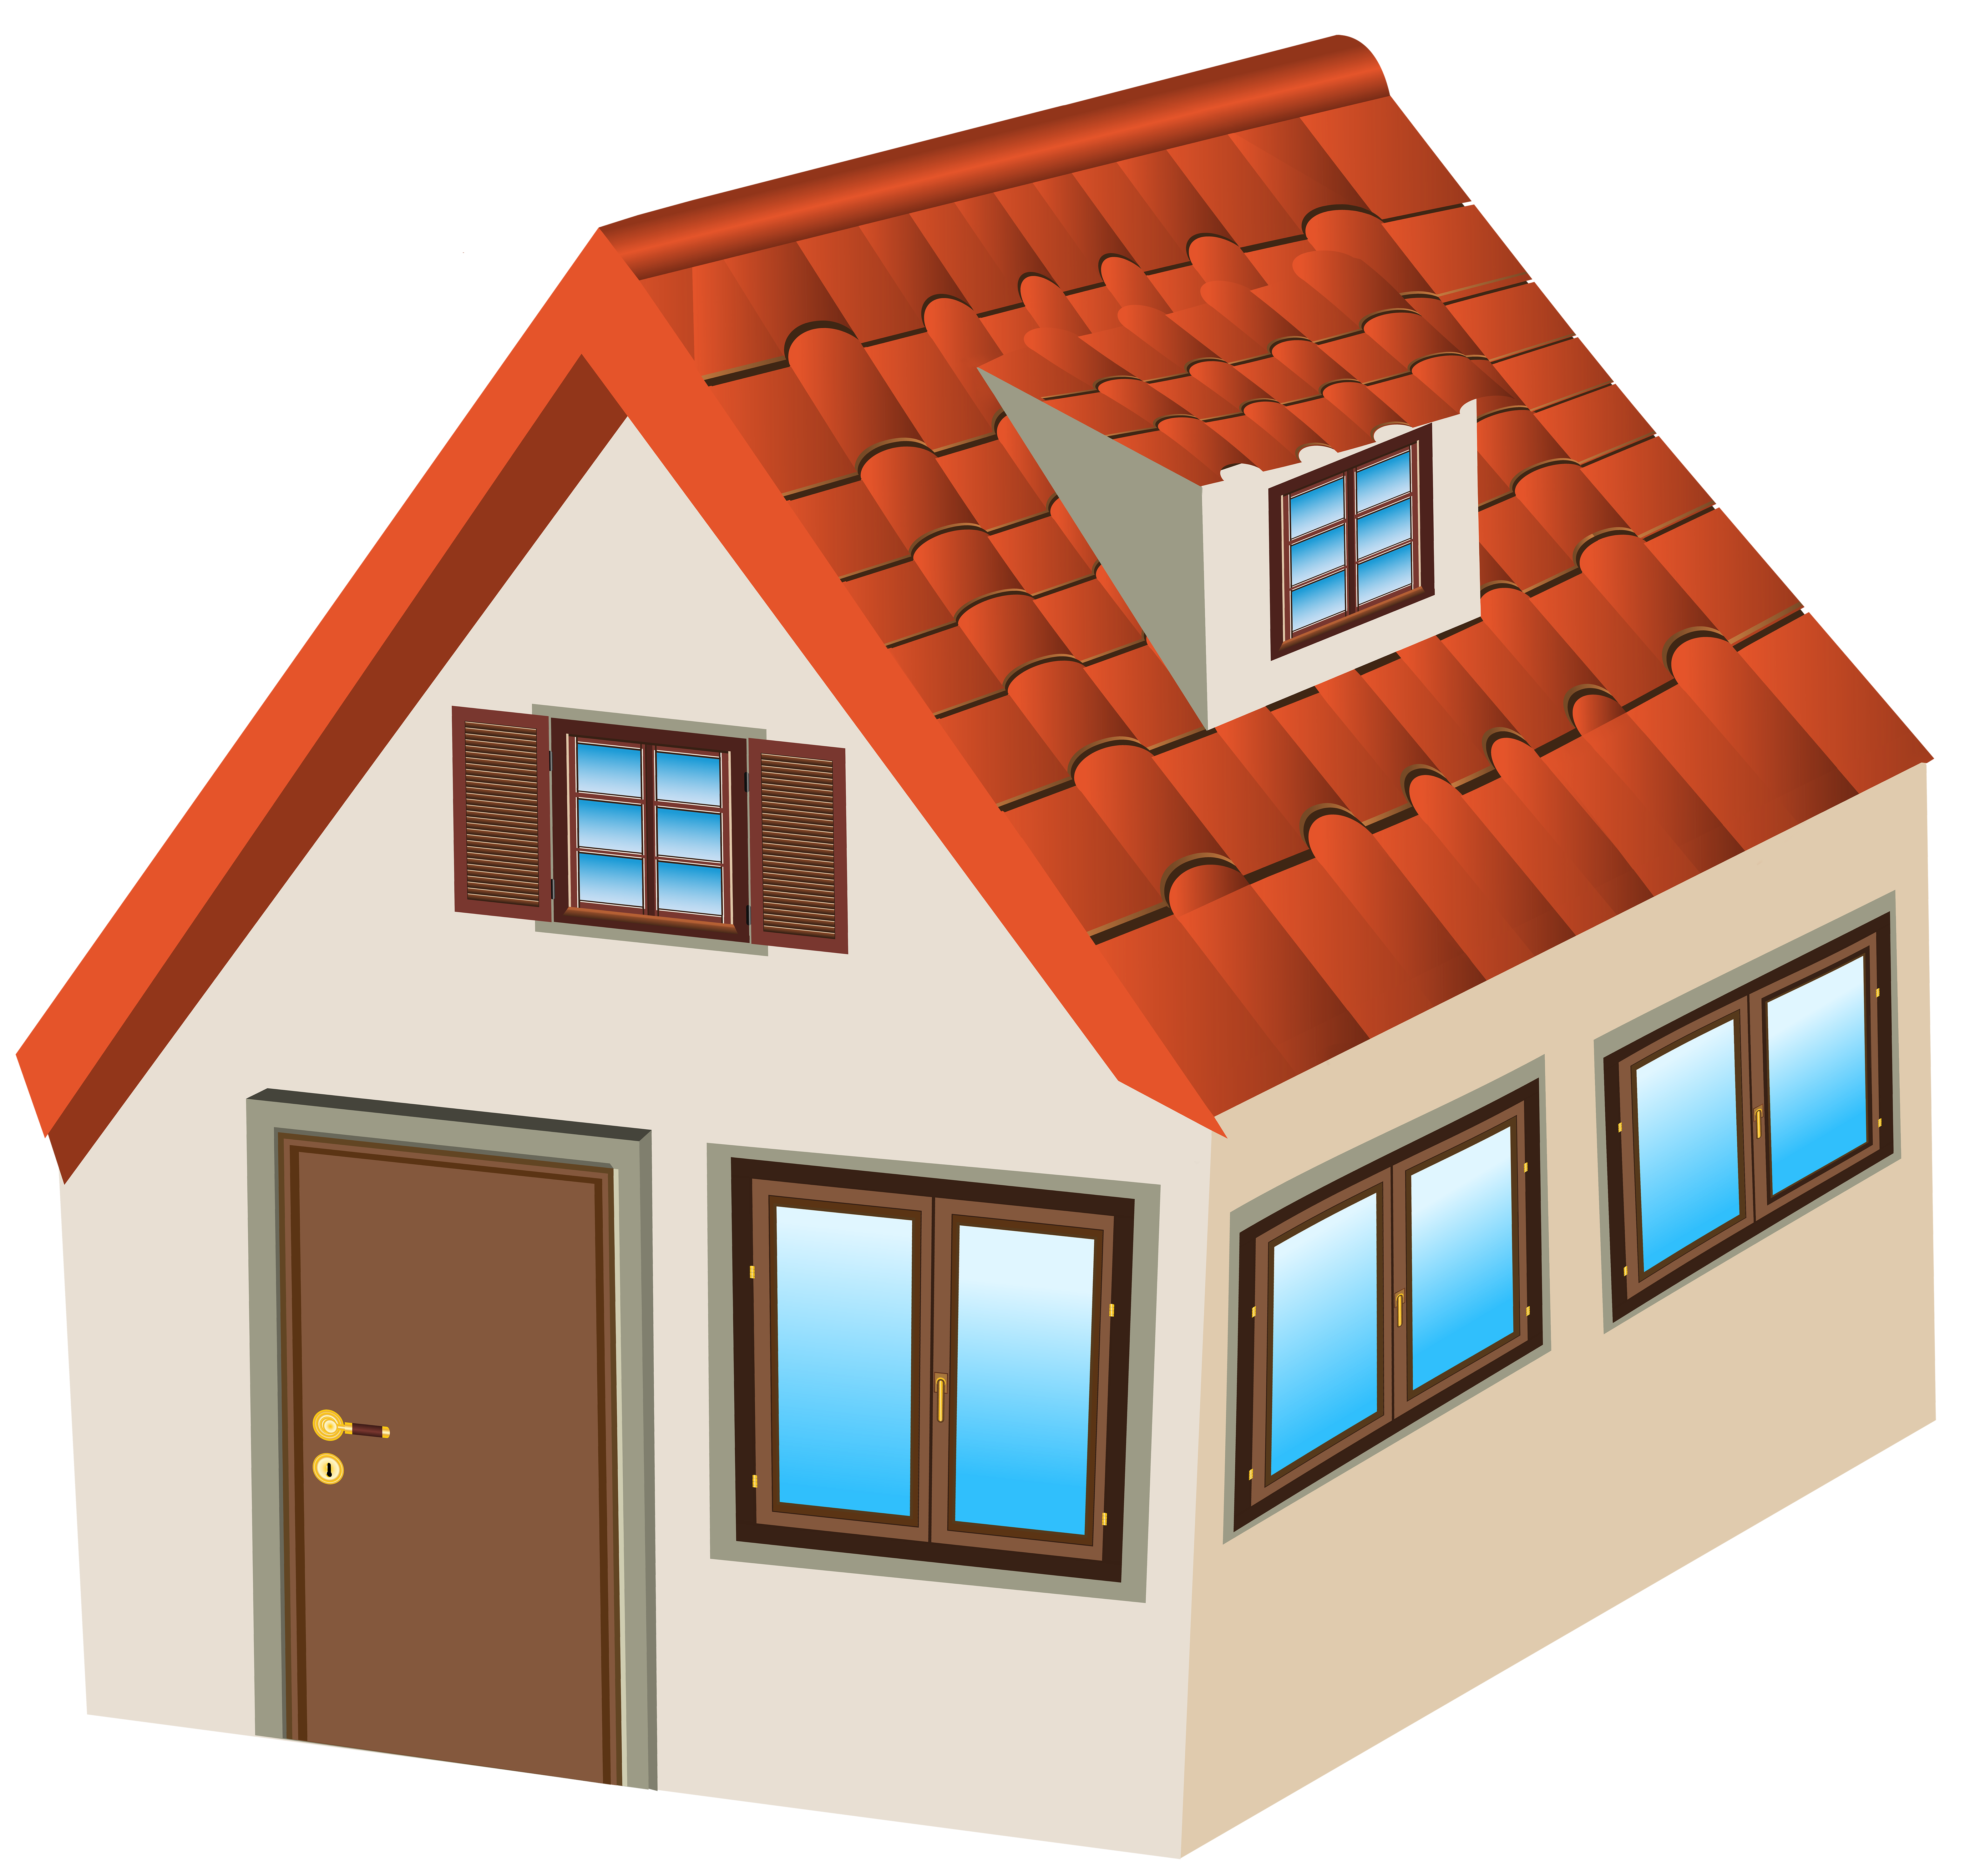 House PNG Clip Art - Best WEB Clipart image library